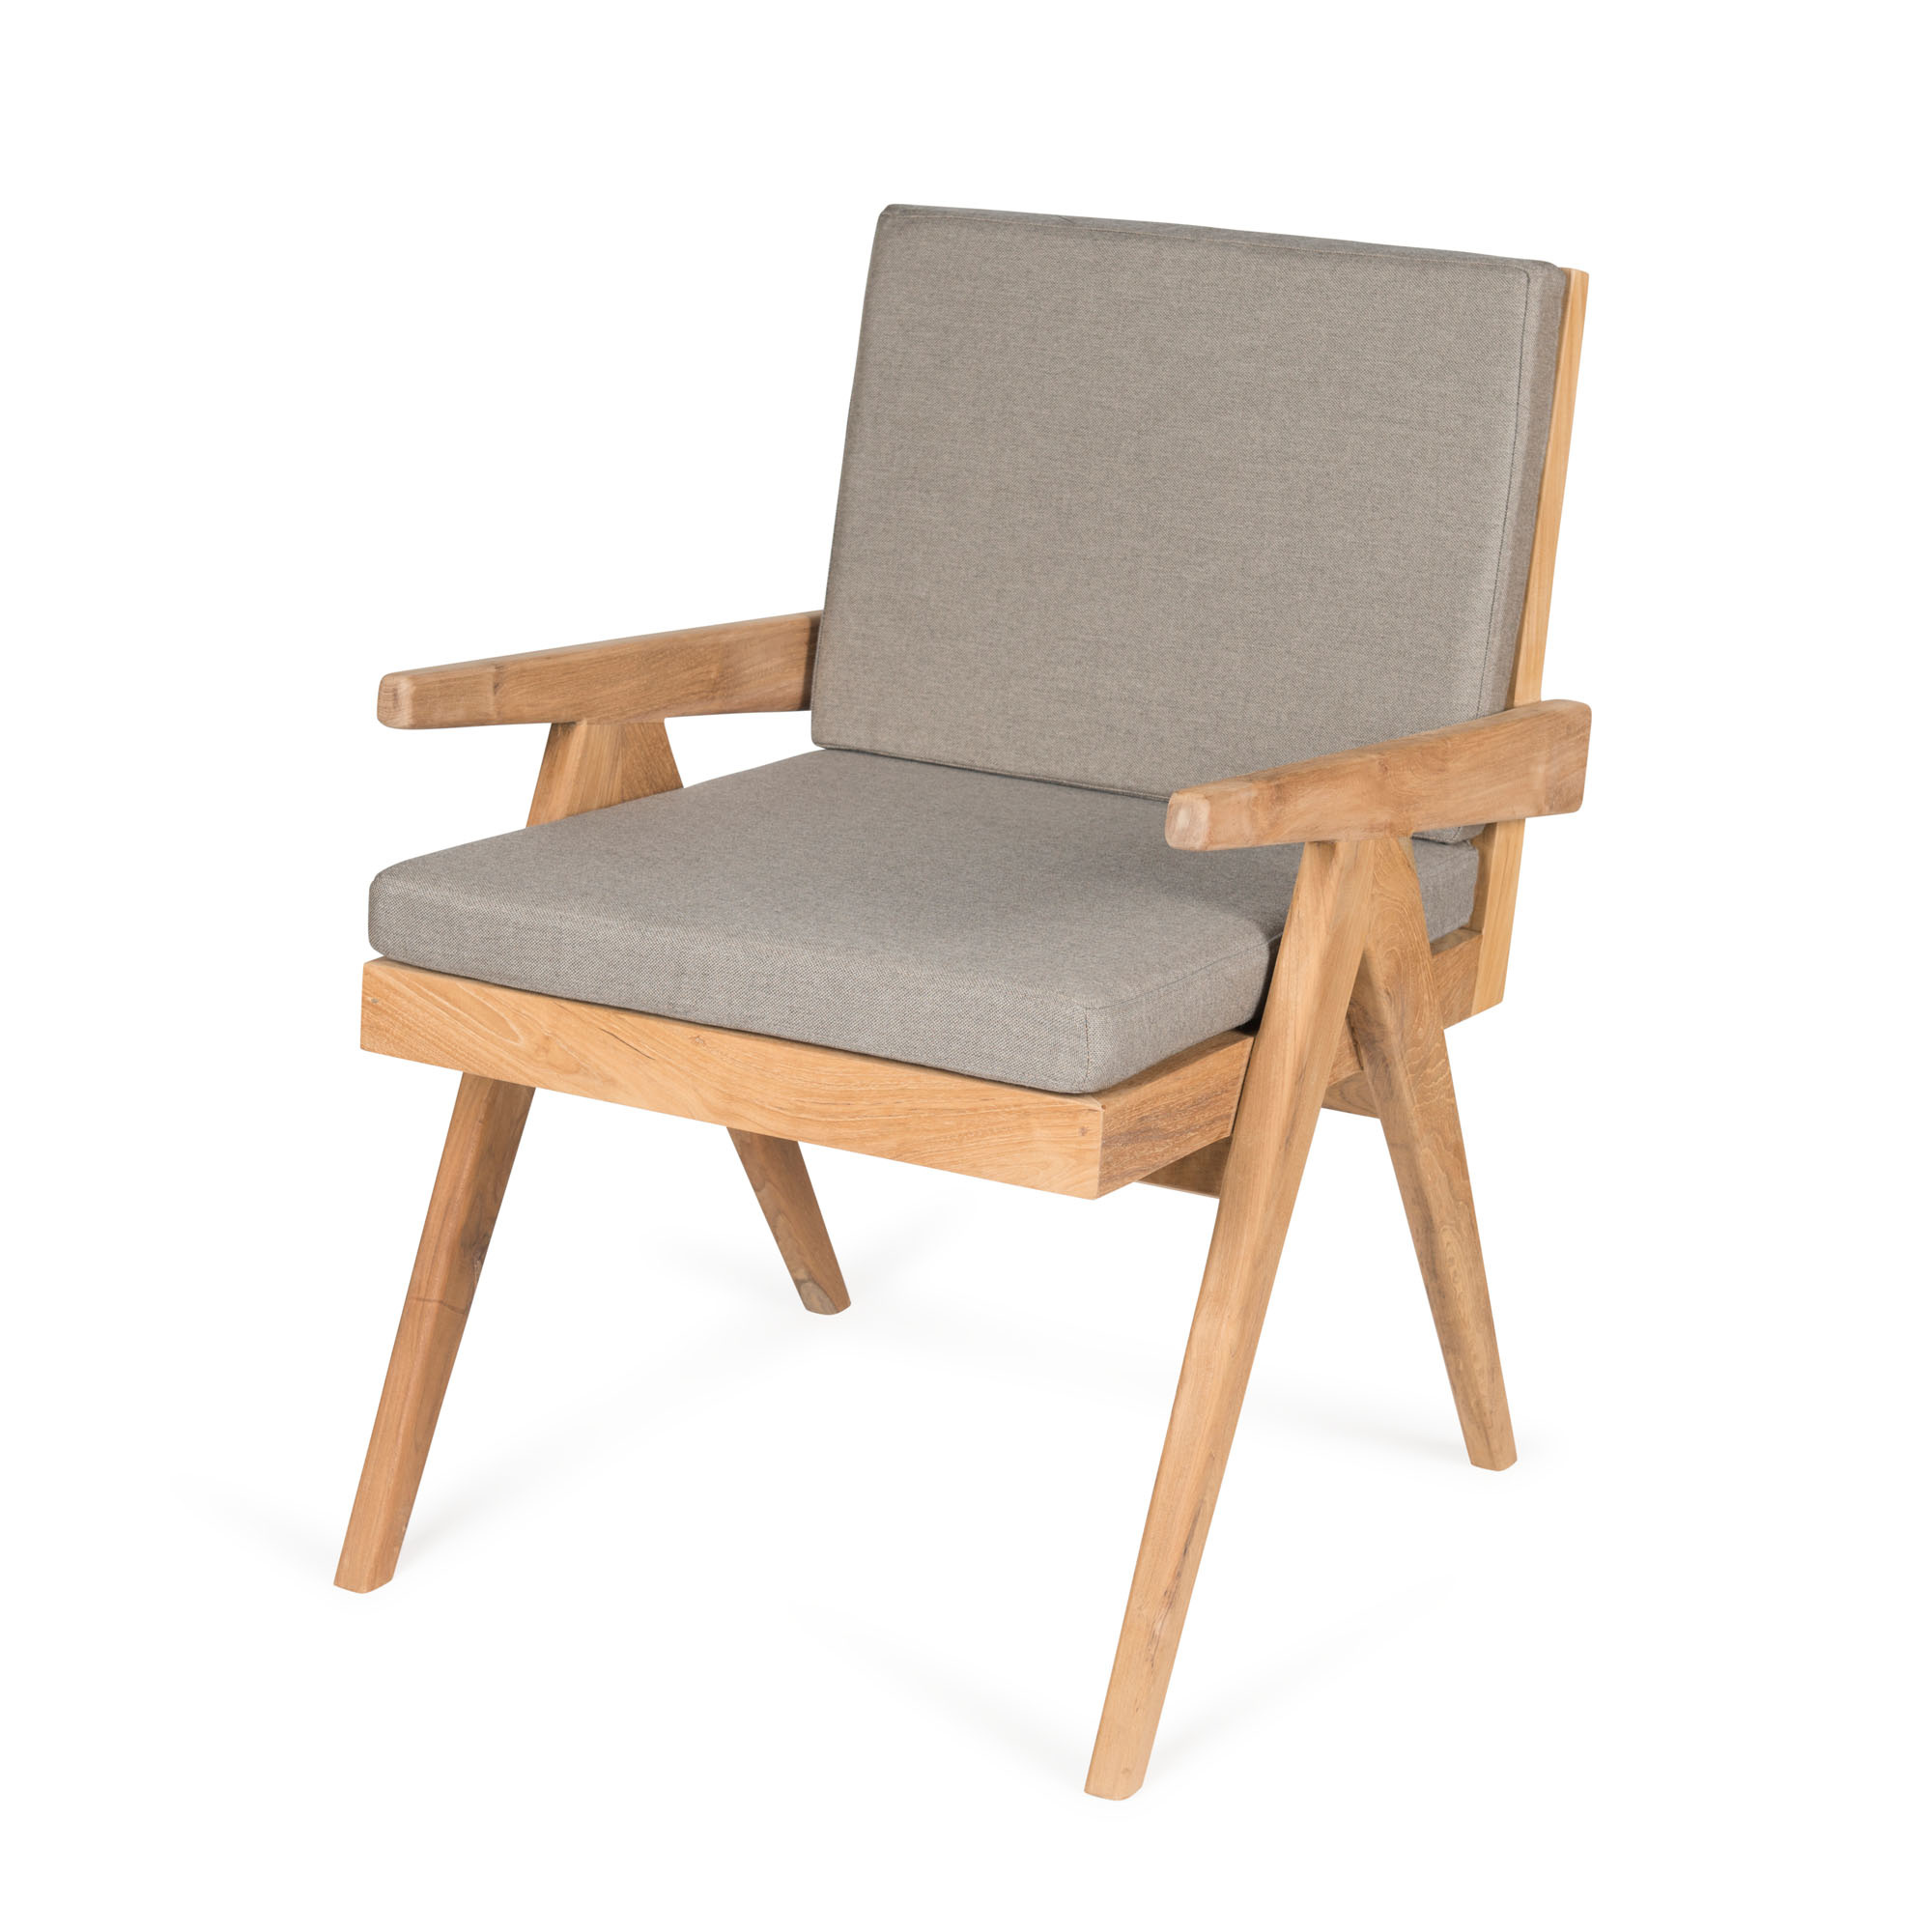 Dining Easy Lounge  Chair - Teak Outdoor with Cushion-1